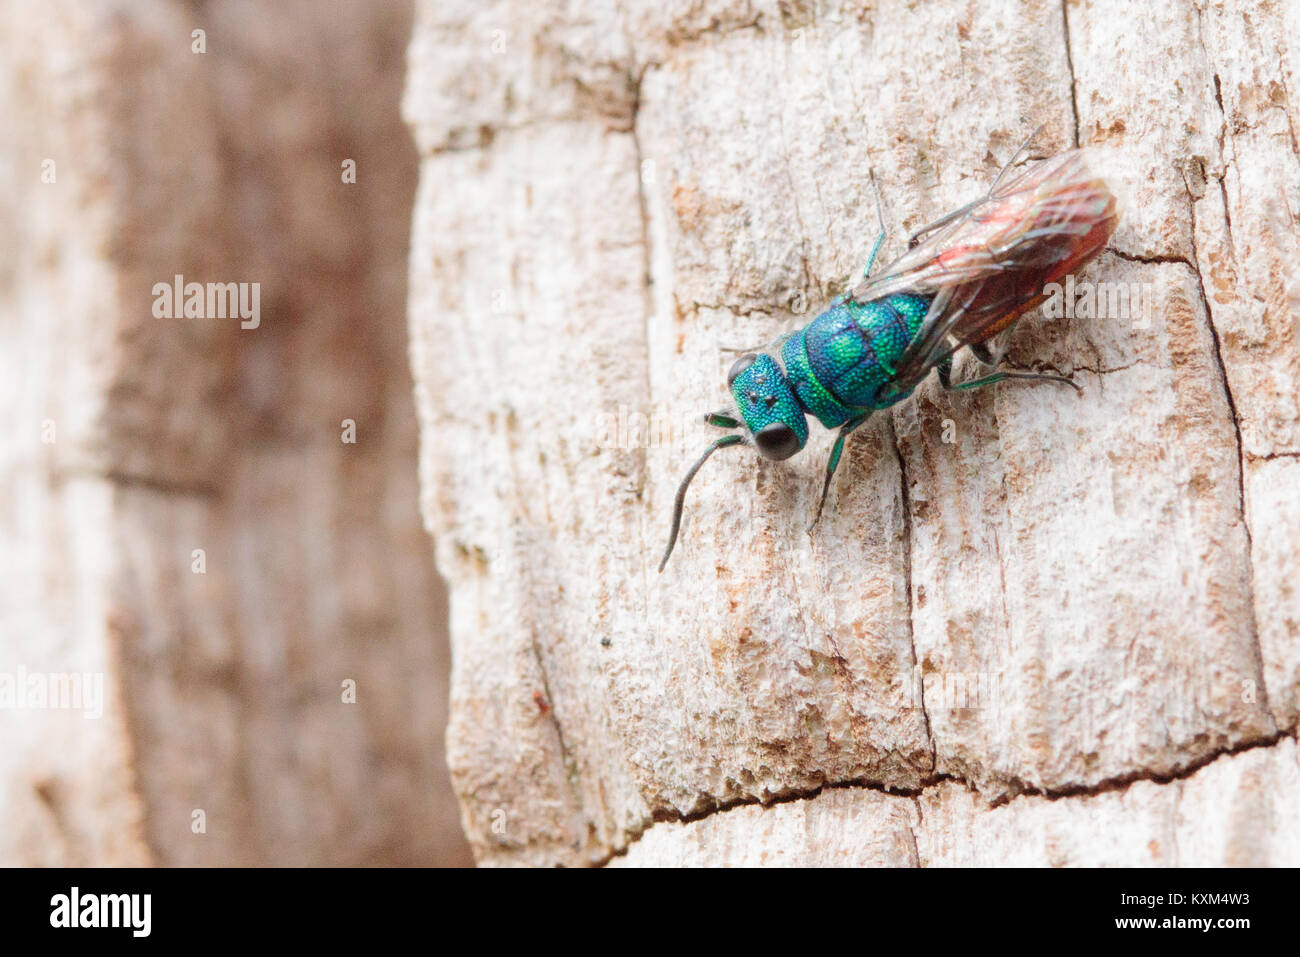 Ruby-tailed wasp (Chrysis sp.) exploring surface of dead oak tree. Surrey, UK. - Stock Image